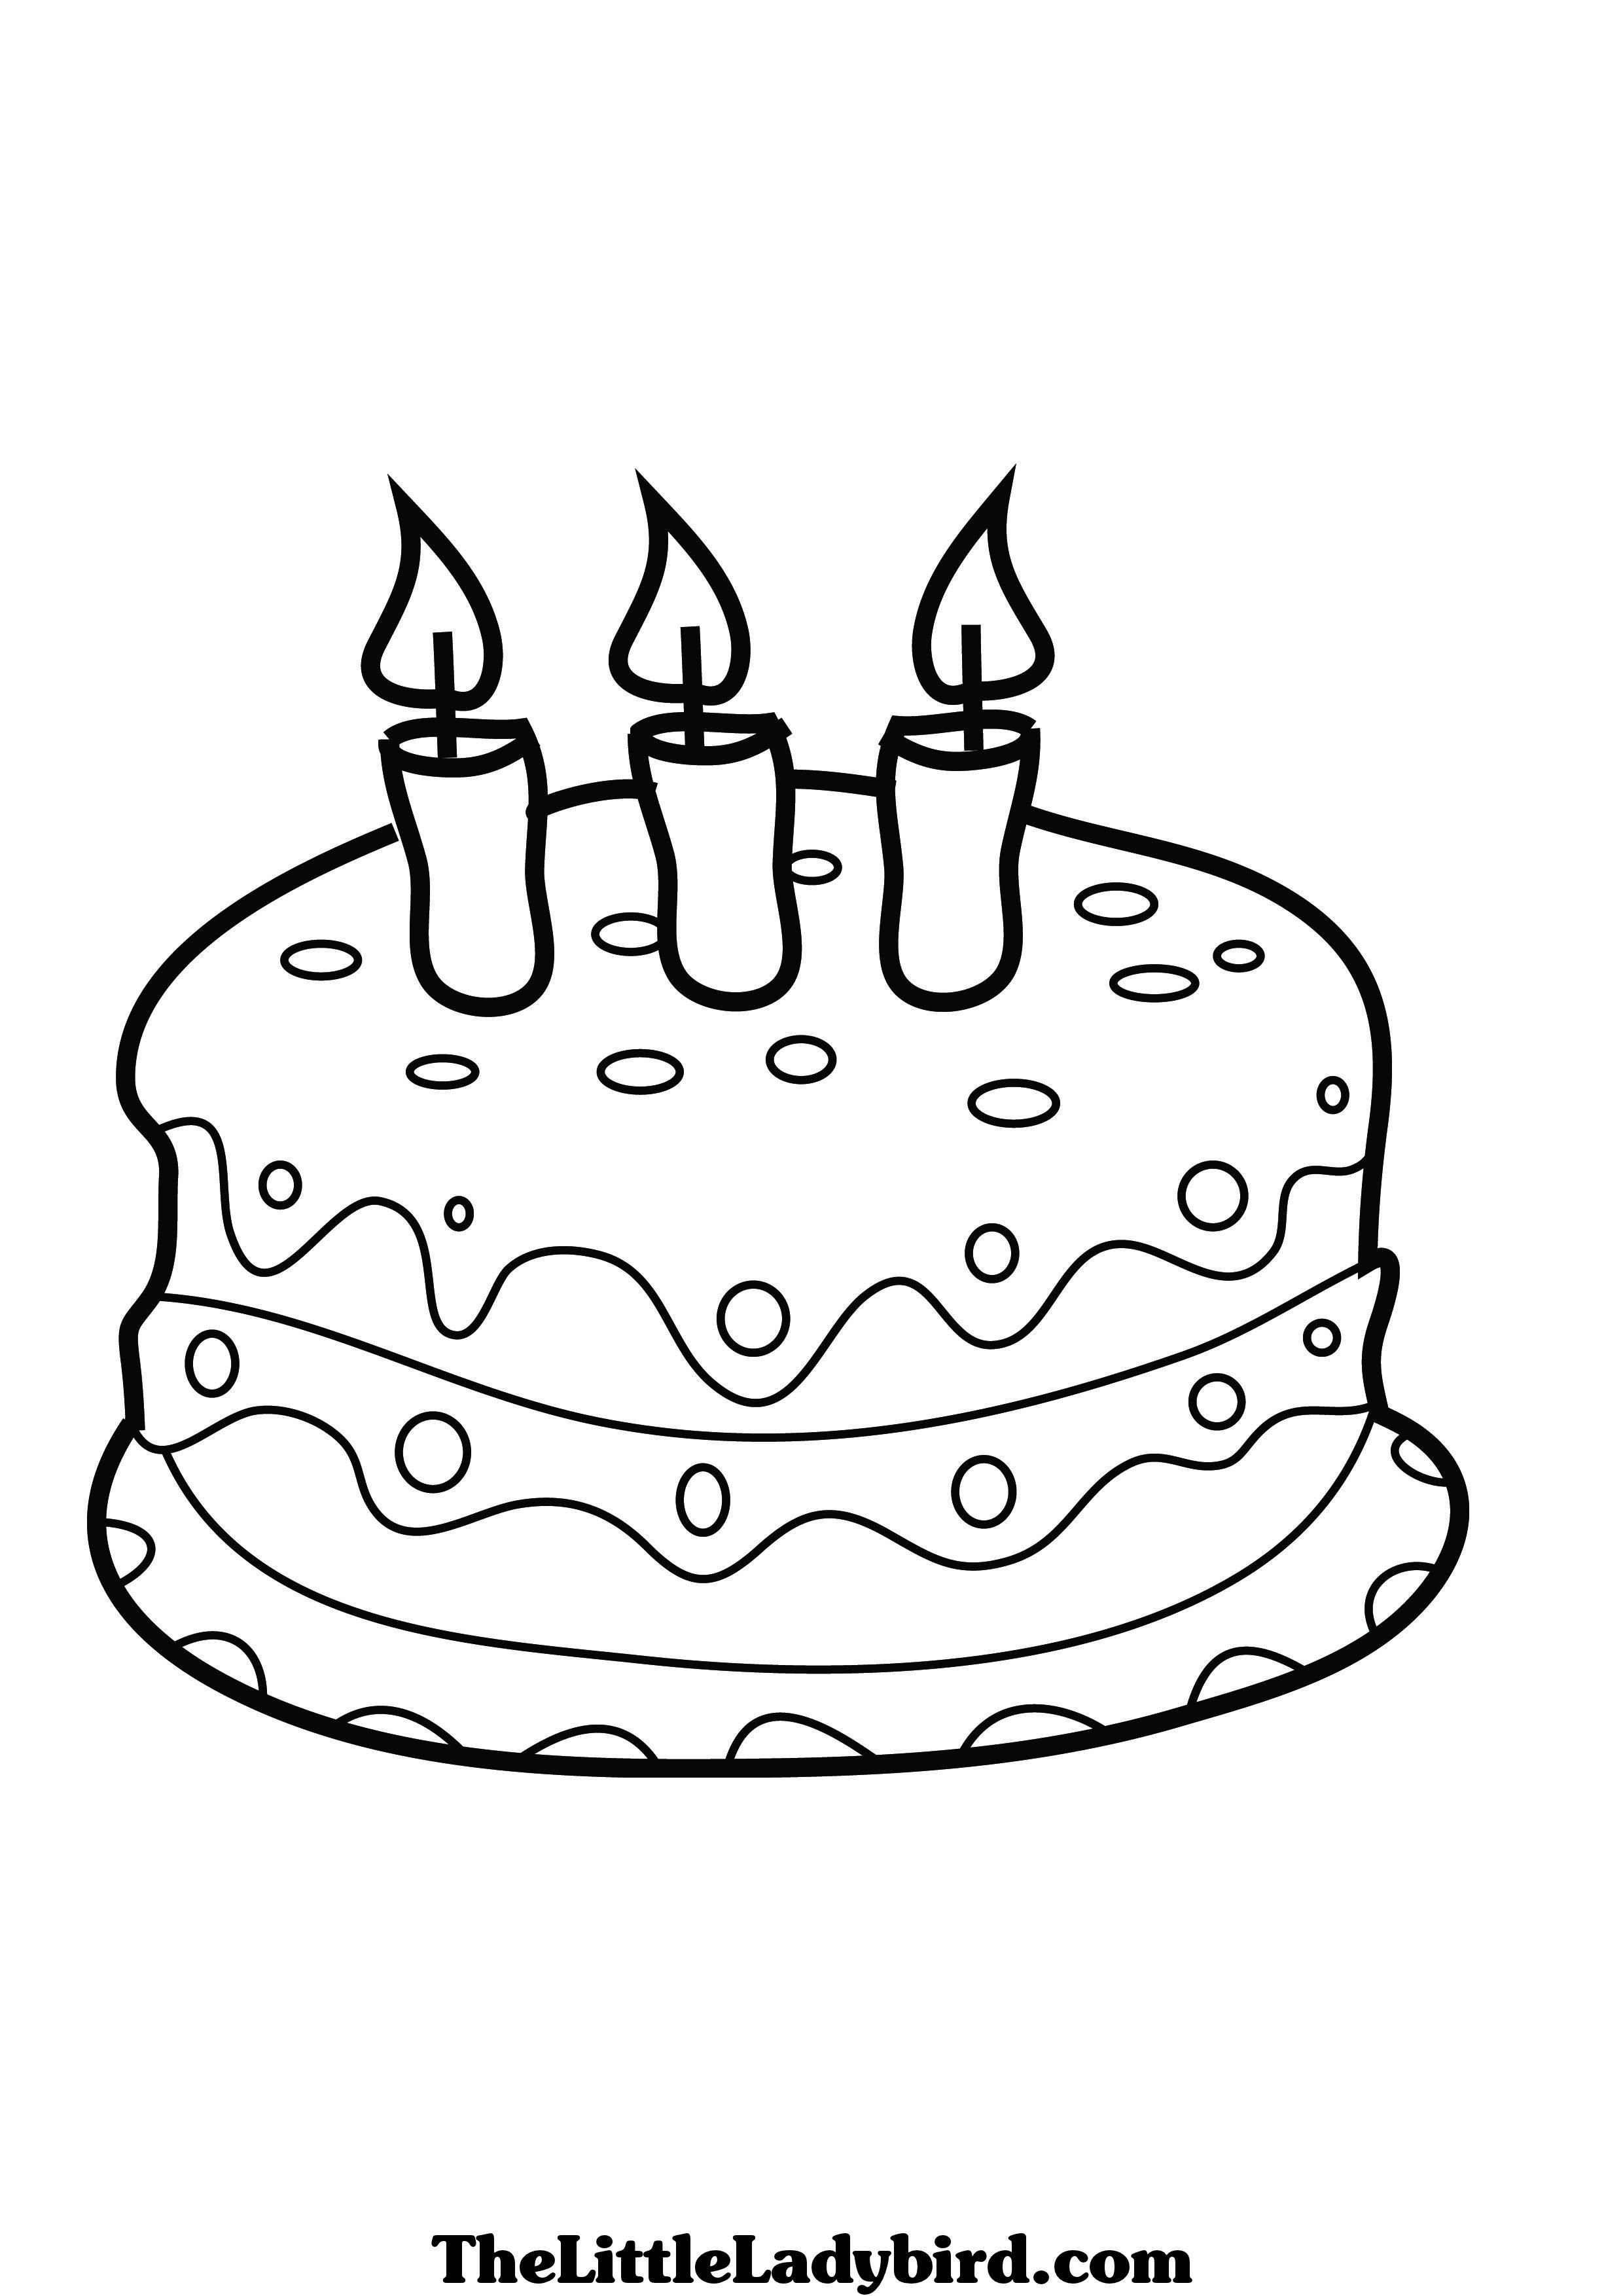 Coloring Page Of A Birthday Cake Pages The Little cakepins.com ...